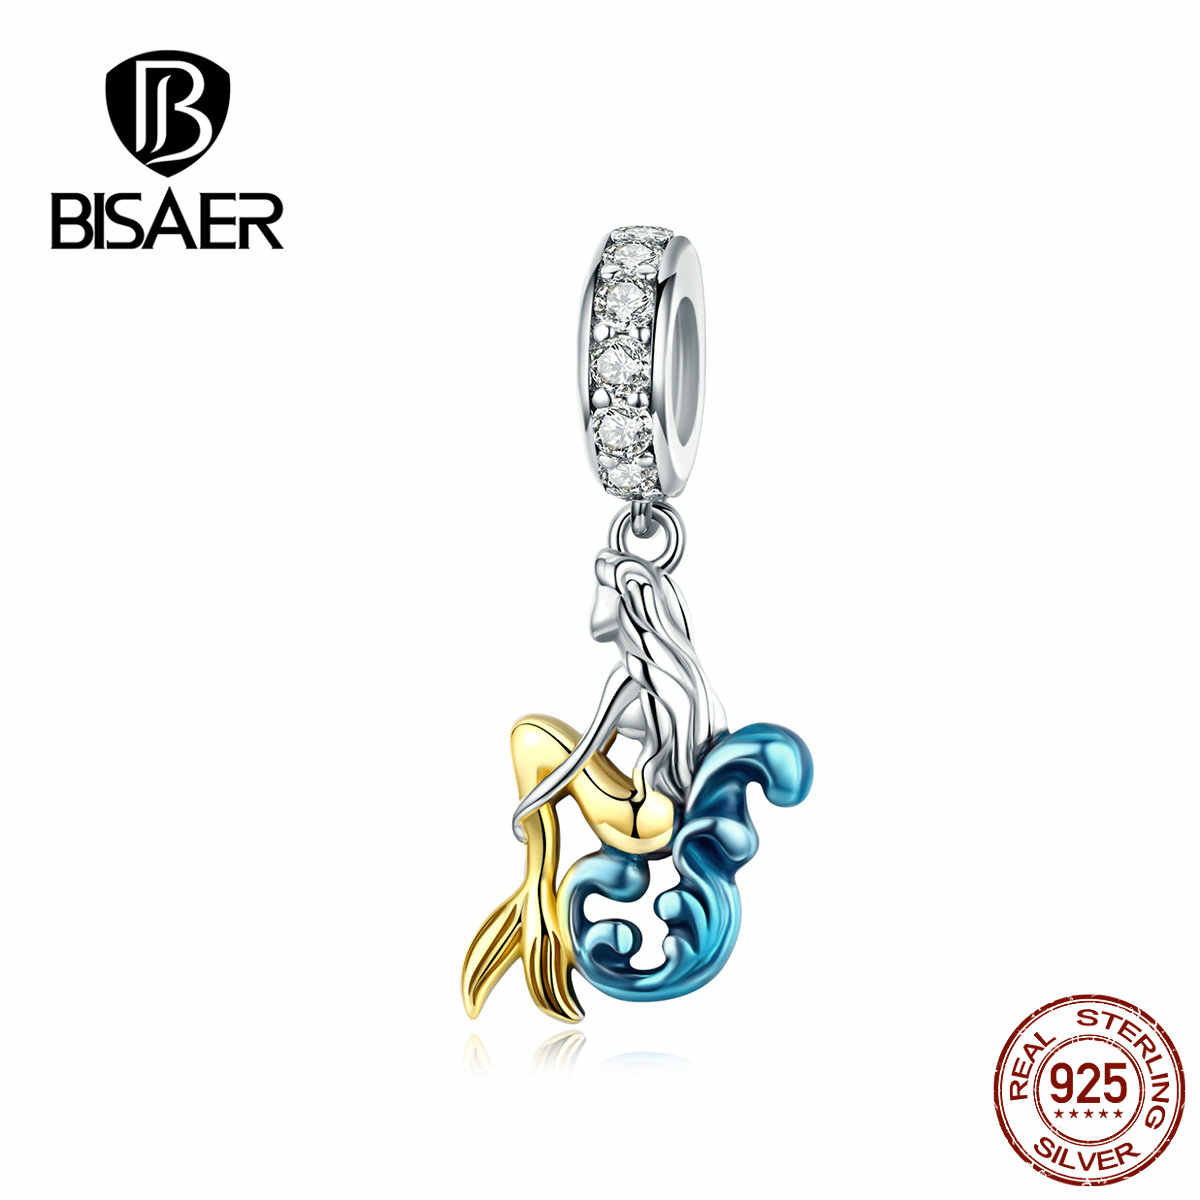 BISAER 2019 925 Sterling Silver Mermaid จี้ Charms Golden Tail Fit PAN กำไลและสร้อยคอแฟชั่นเครื่องประดับ GXC1166